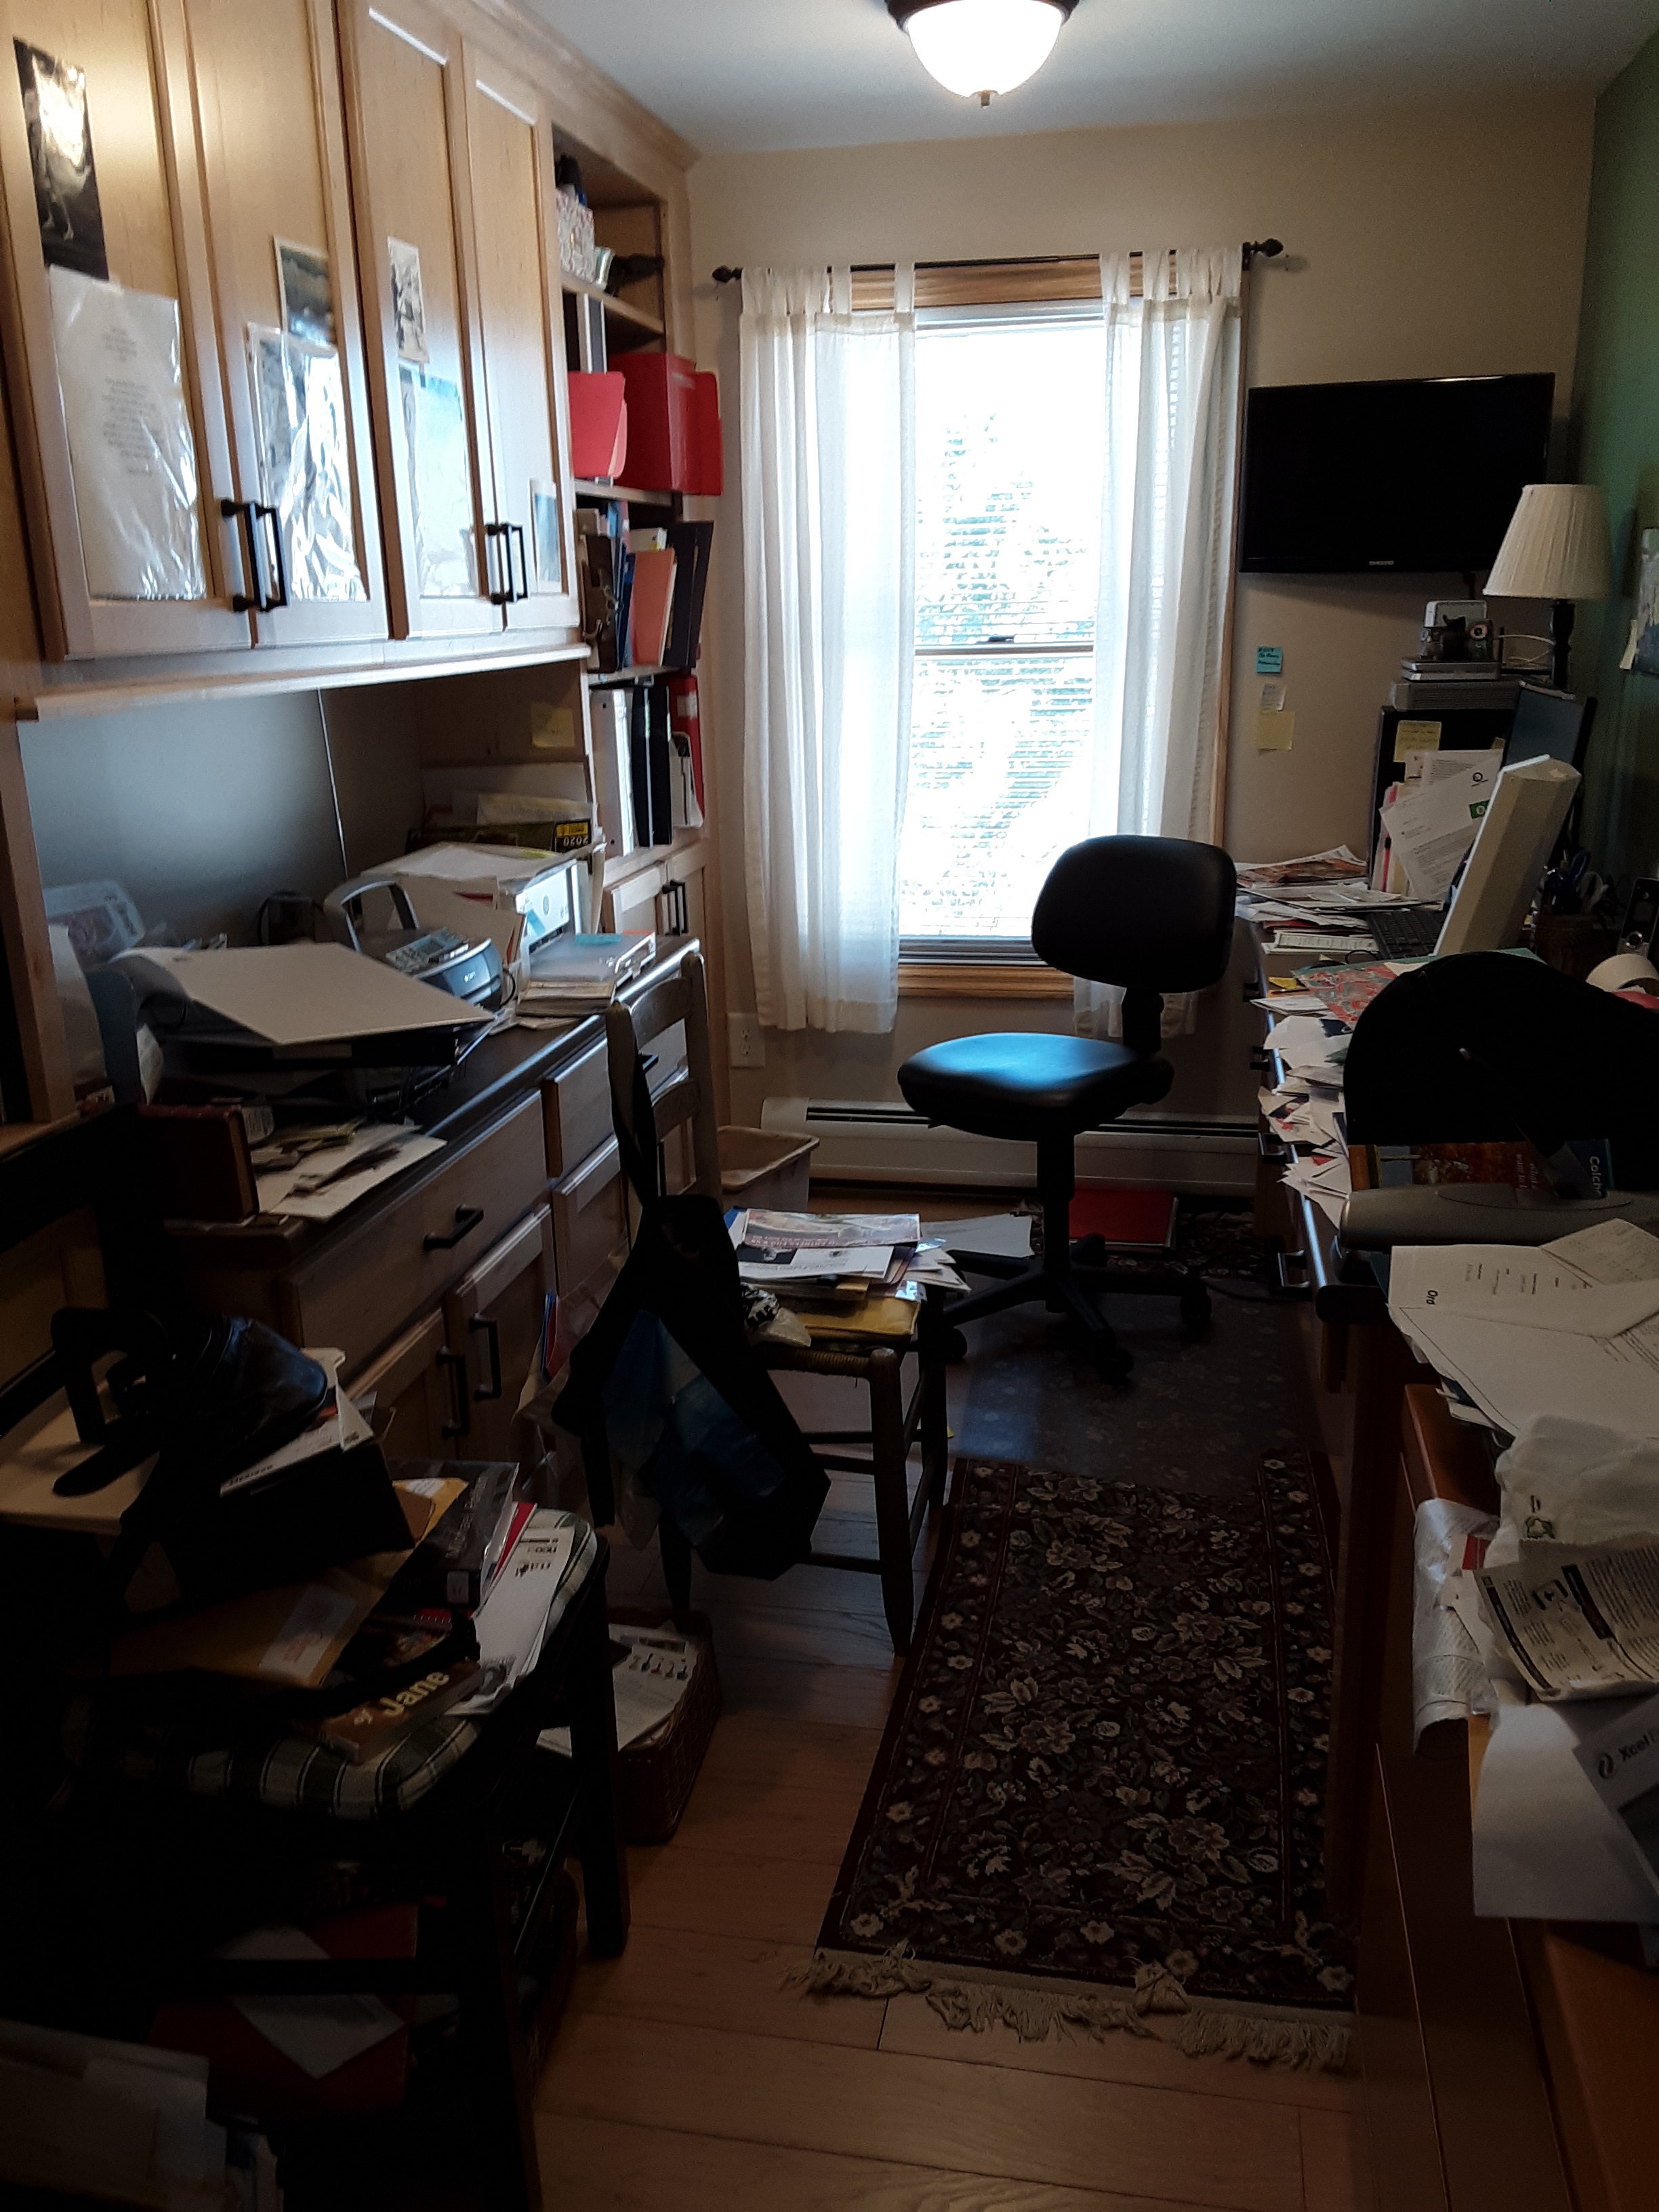 Office view with clutter